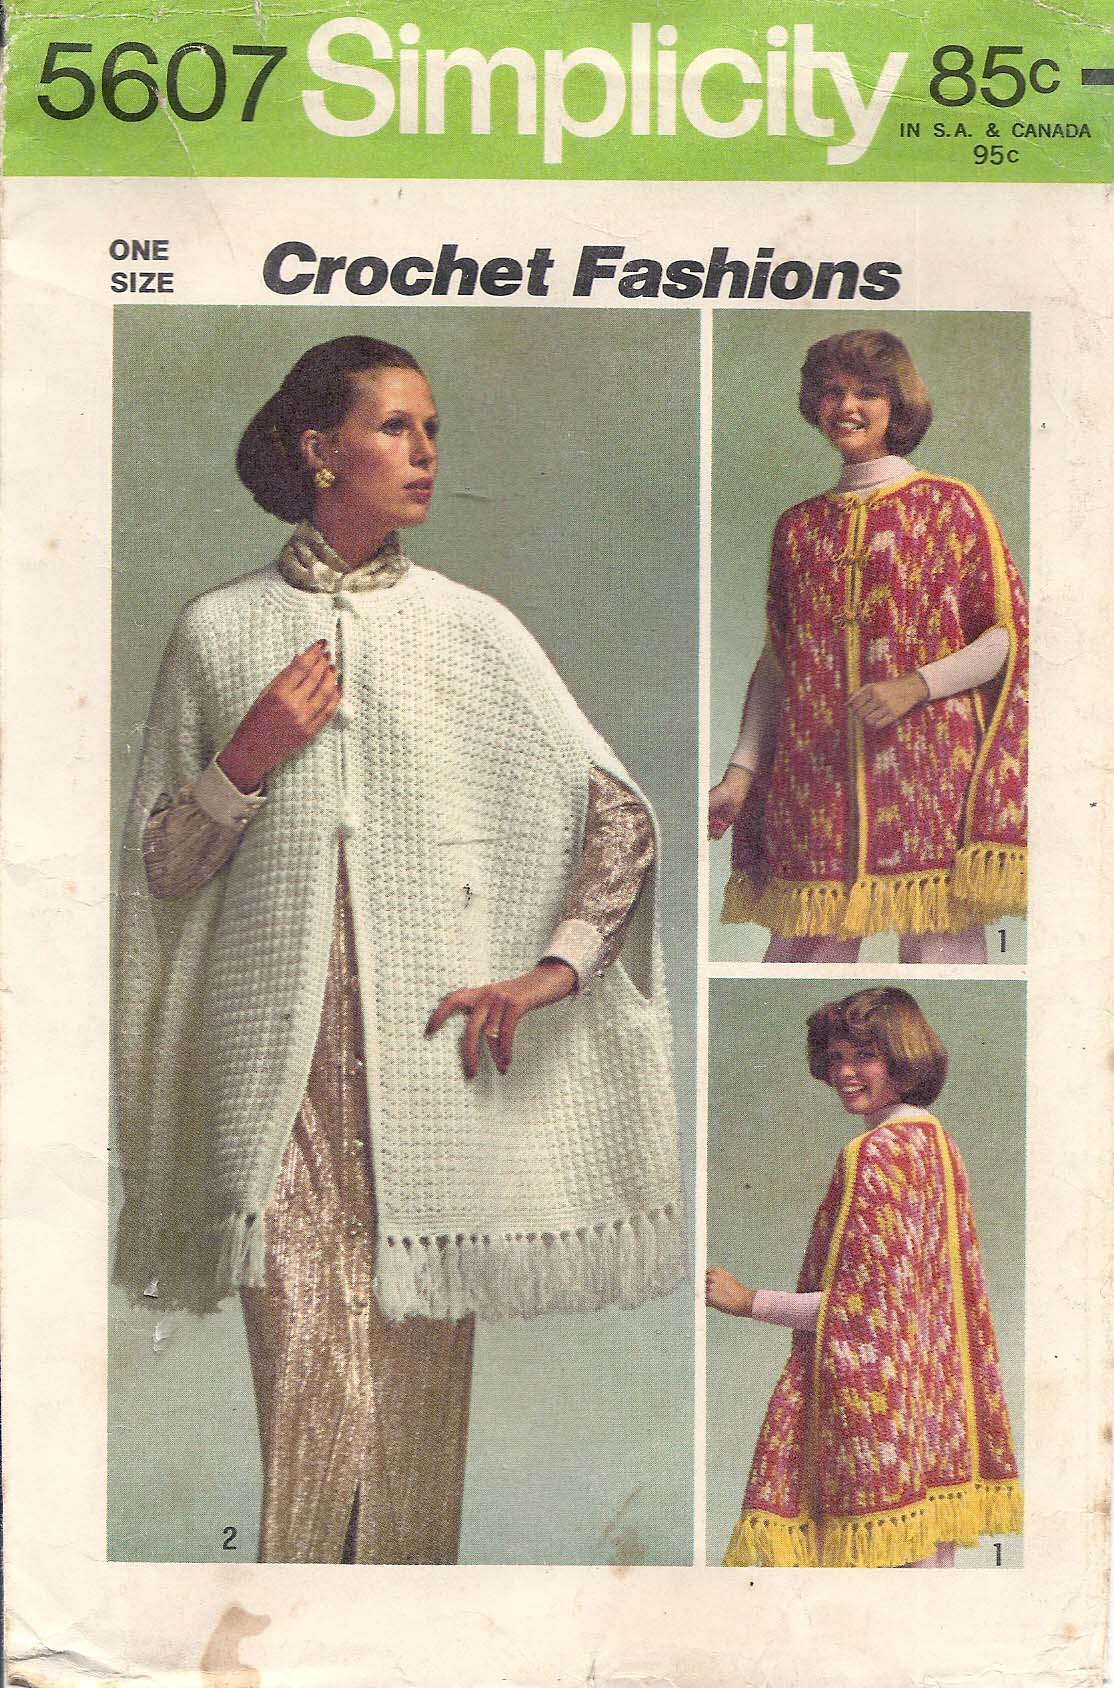 PATTERNS FOR KNITTING CROCHET CAPES ? Easy Crochet Patterns